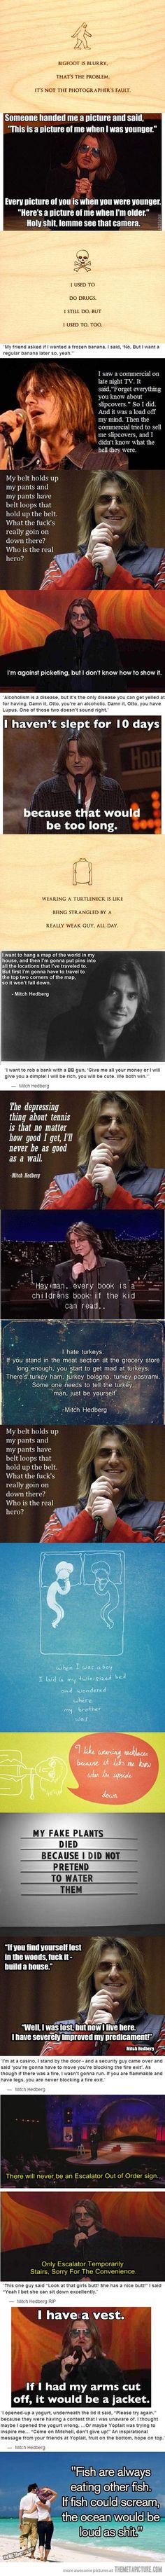 Mitch Hedberg was simply brilliant…